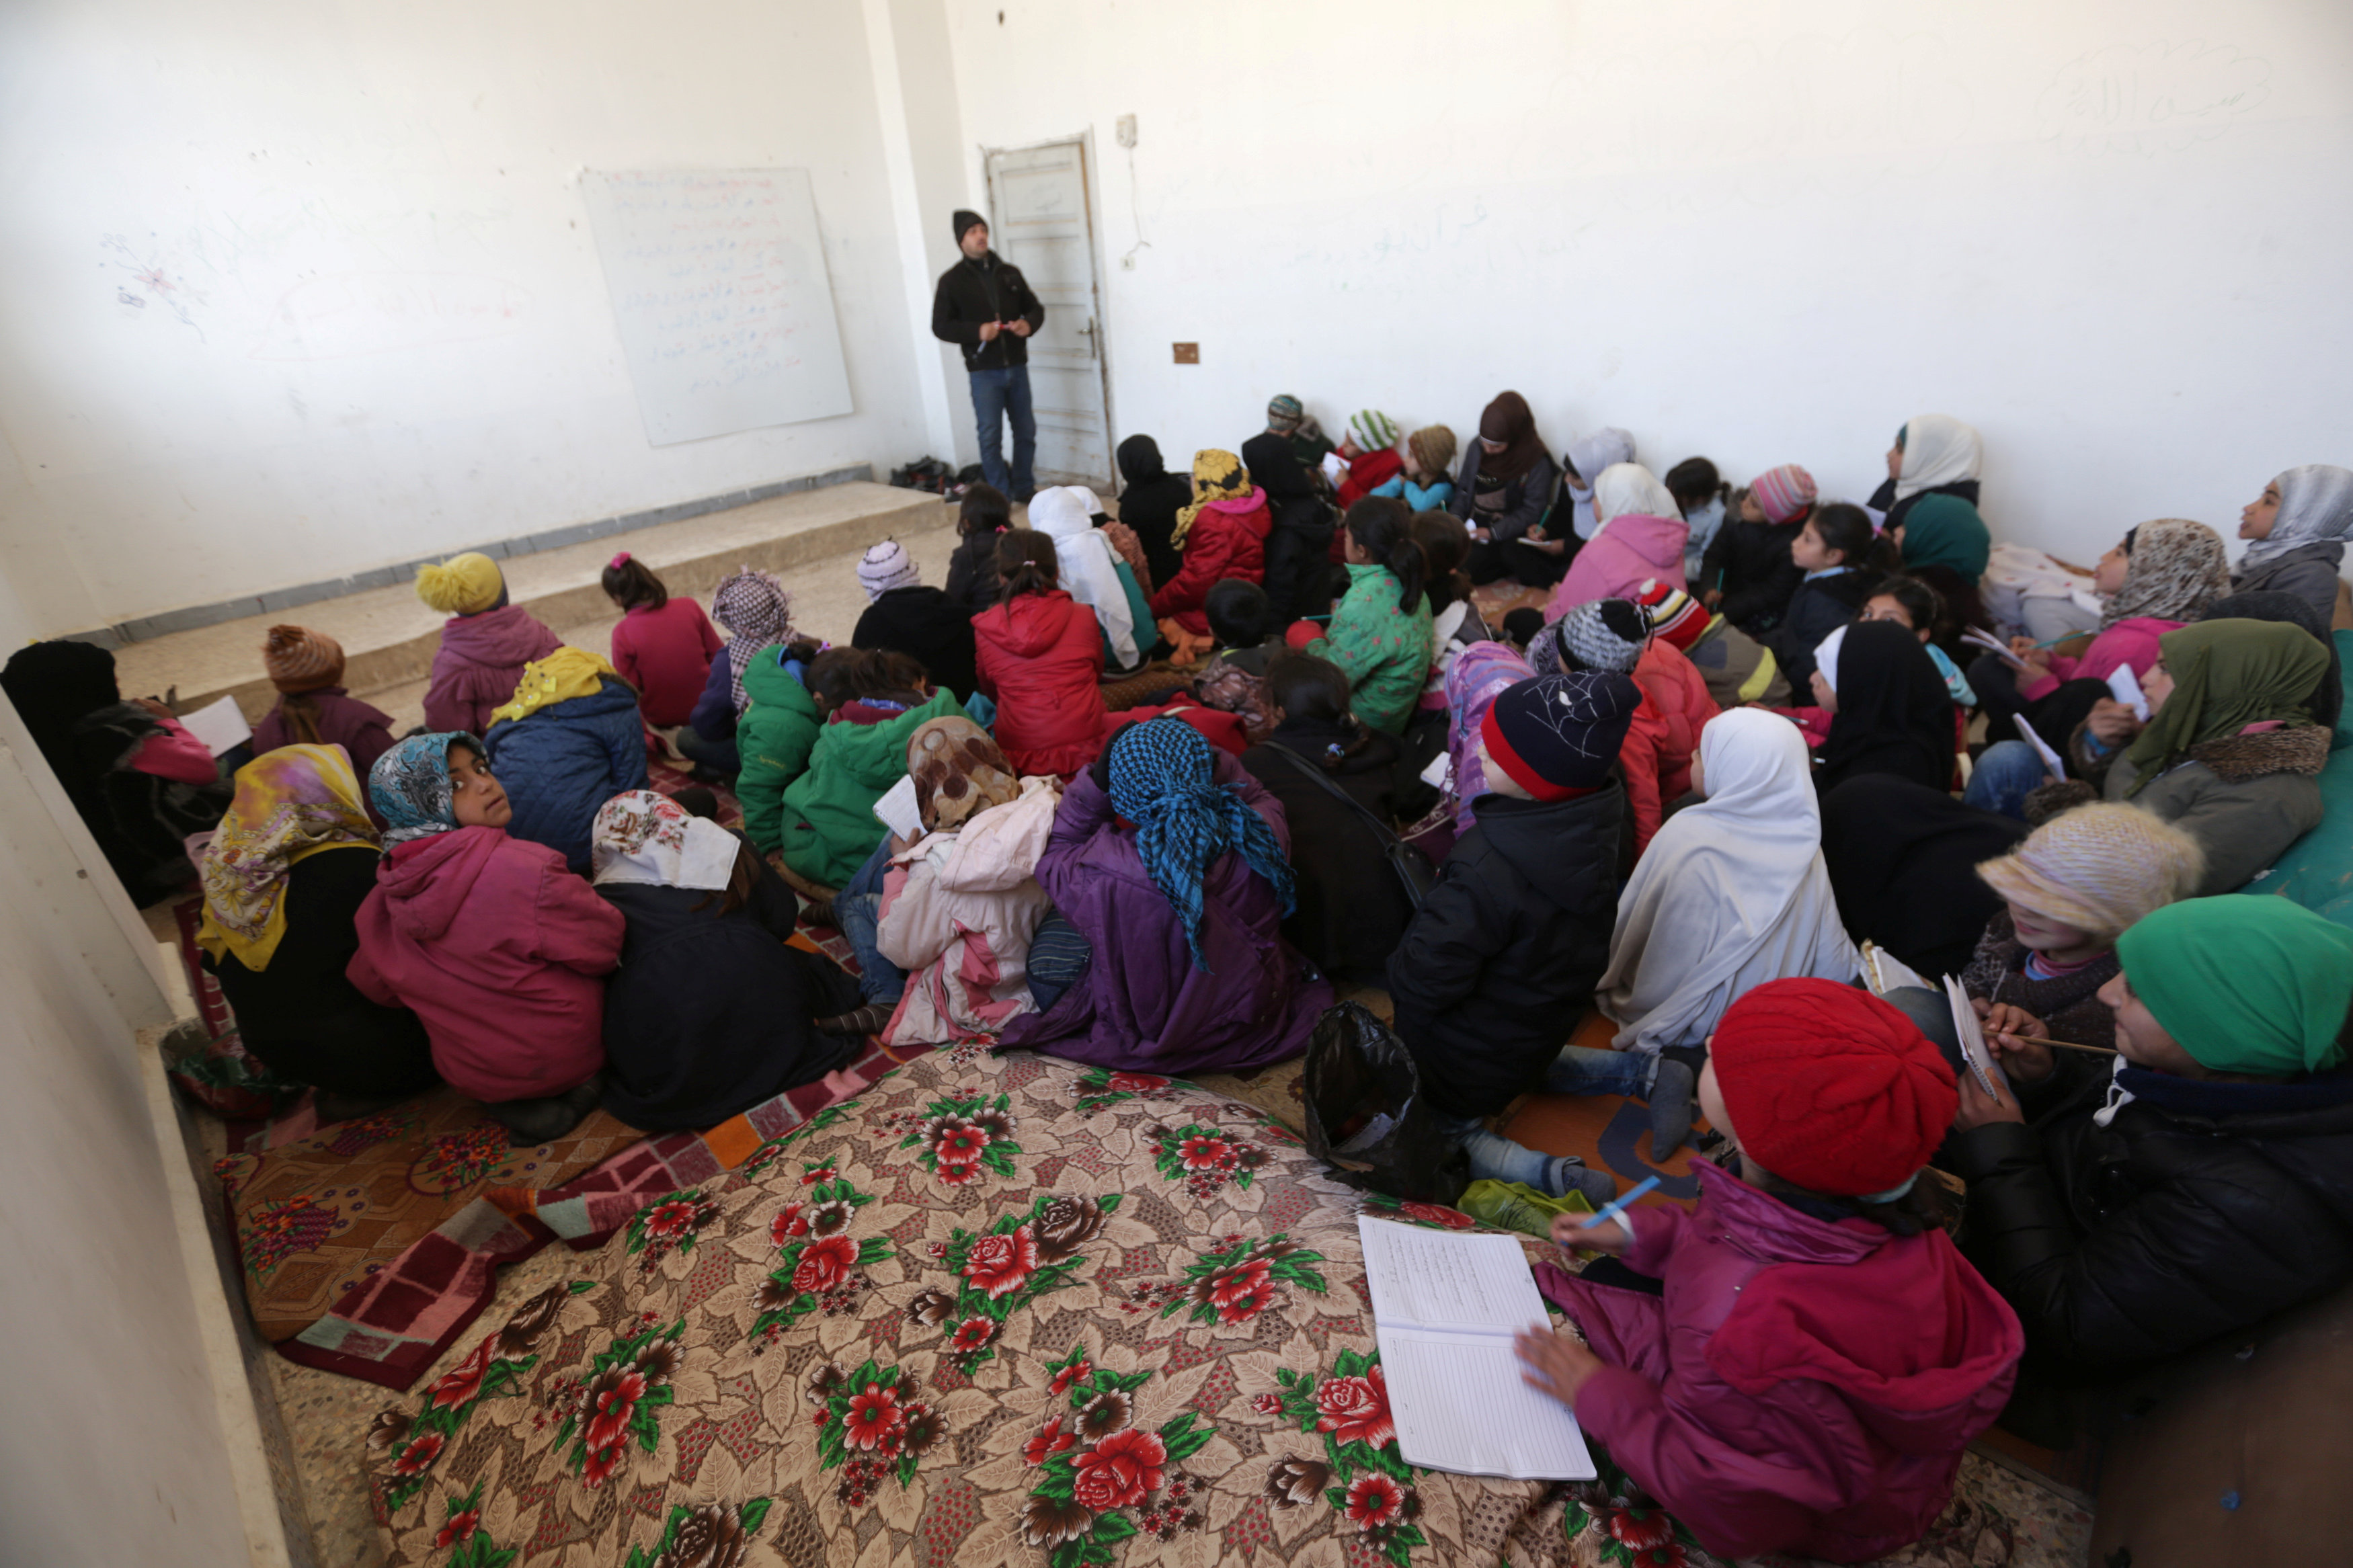 schoolchildren sit on mats as they return to school in Aleppo after Islamic State driven out